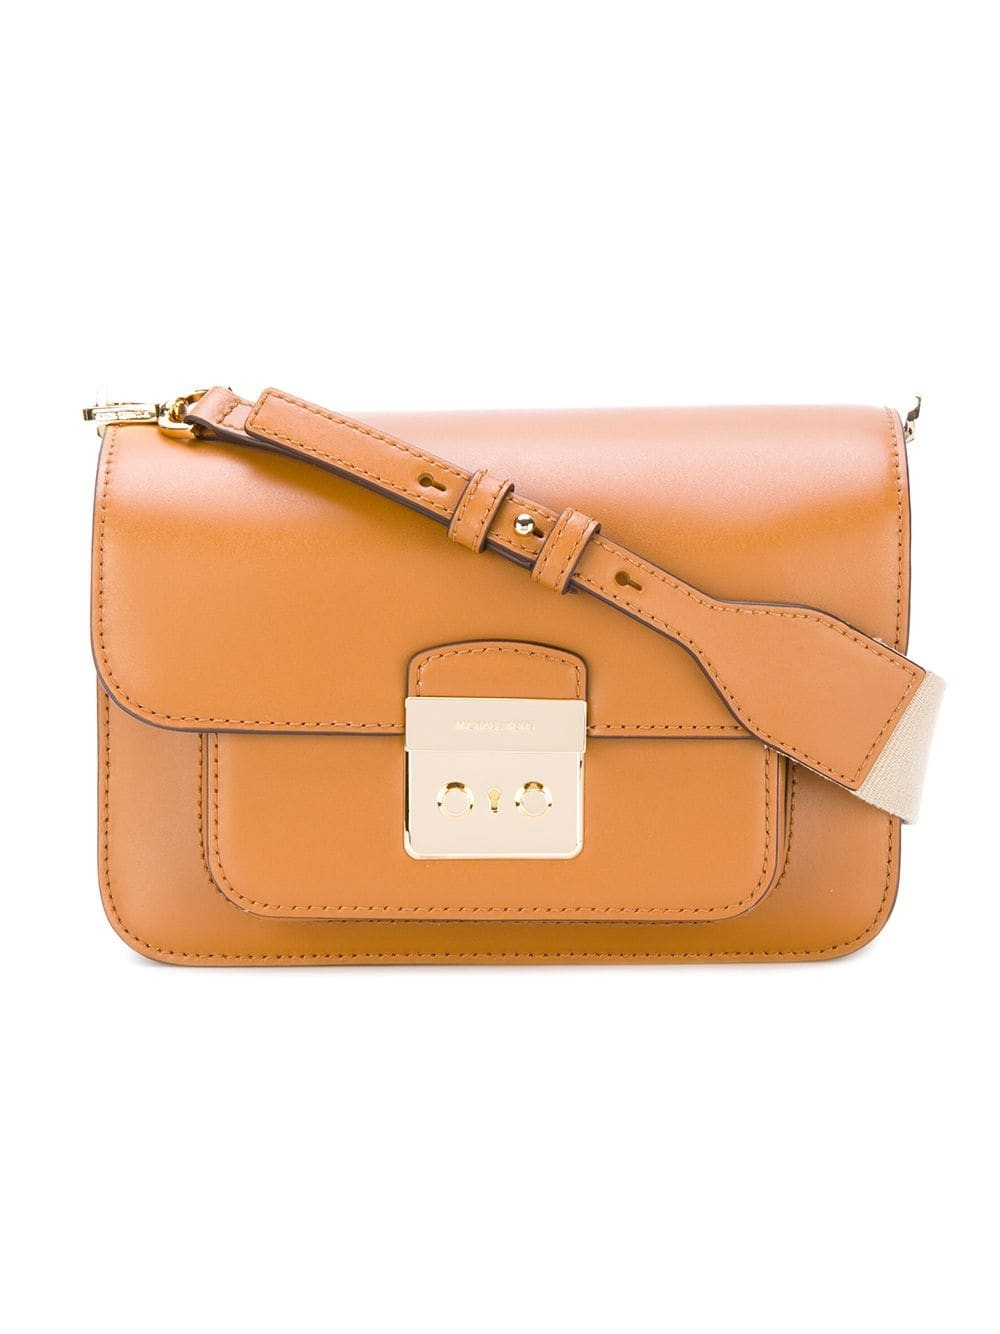 2f33537318e7 michael kors mk SATCHEL SHOULDER BAG available on montiboutique.com ...